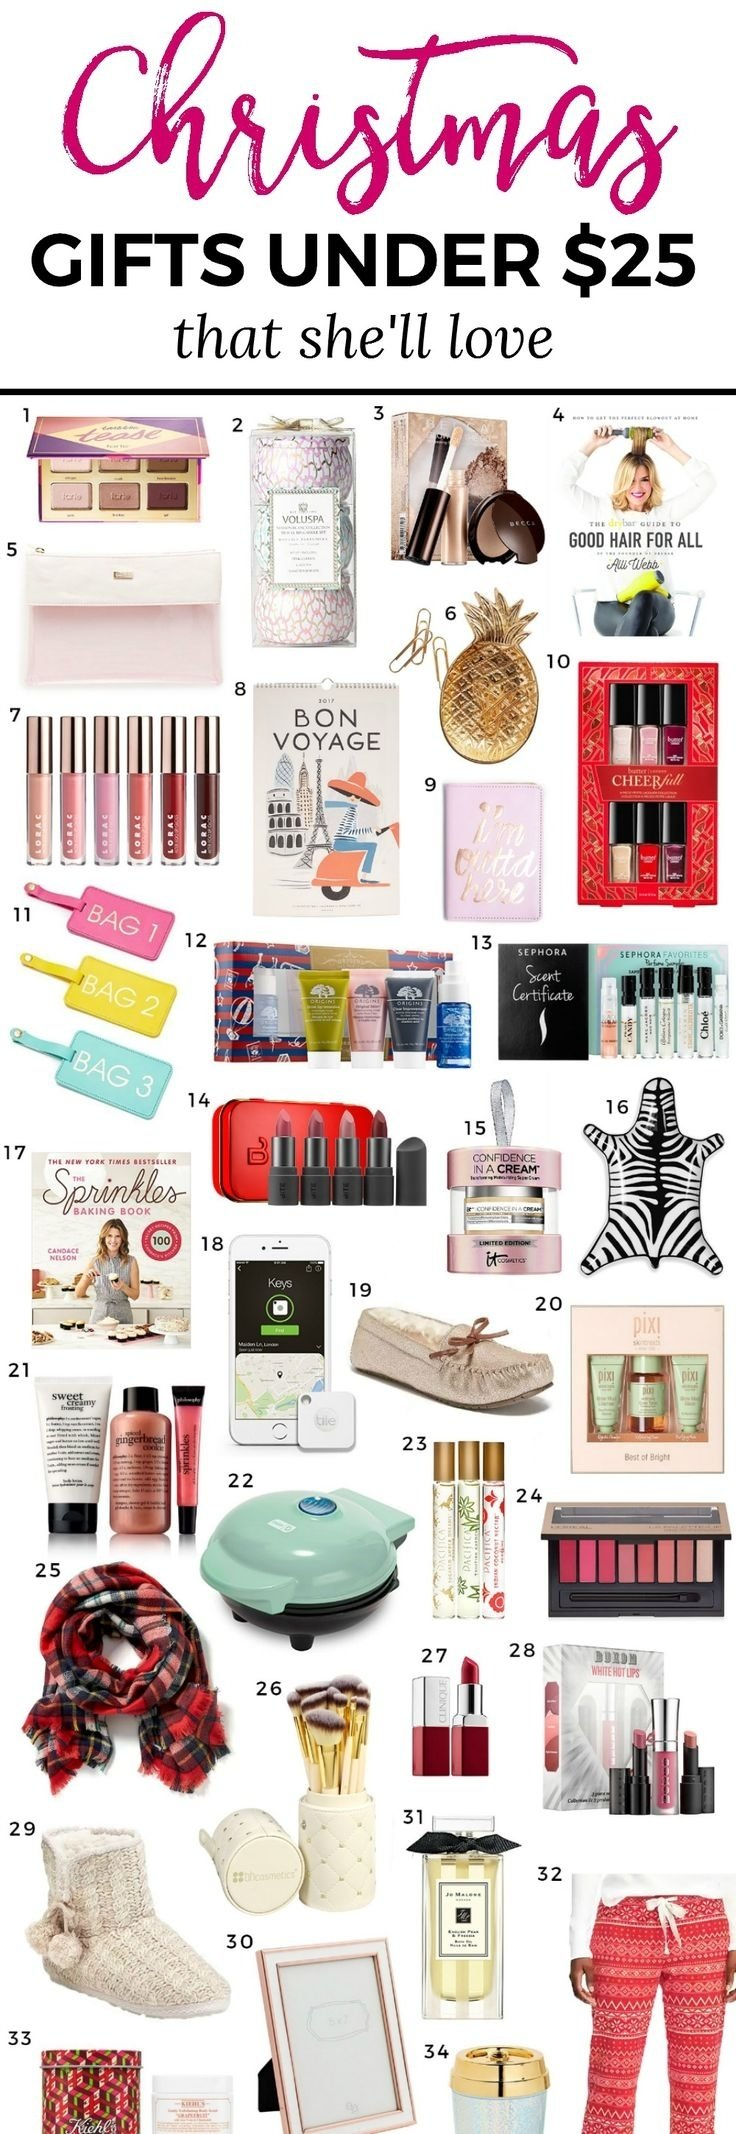 10 Nice Xmas Gift Ideas For Women 38 best gift ideas images on pinterest gift ideas christmas 2020